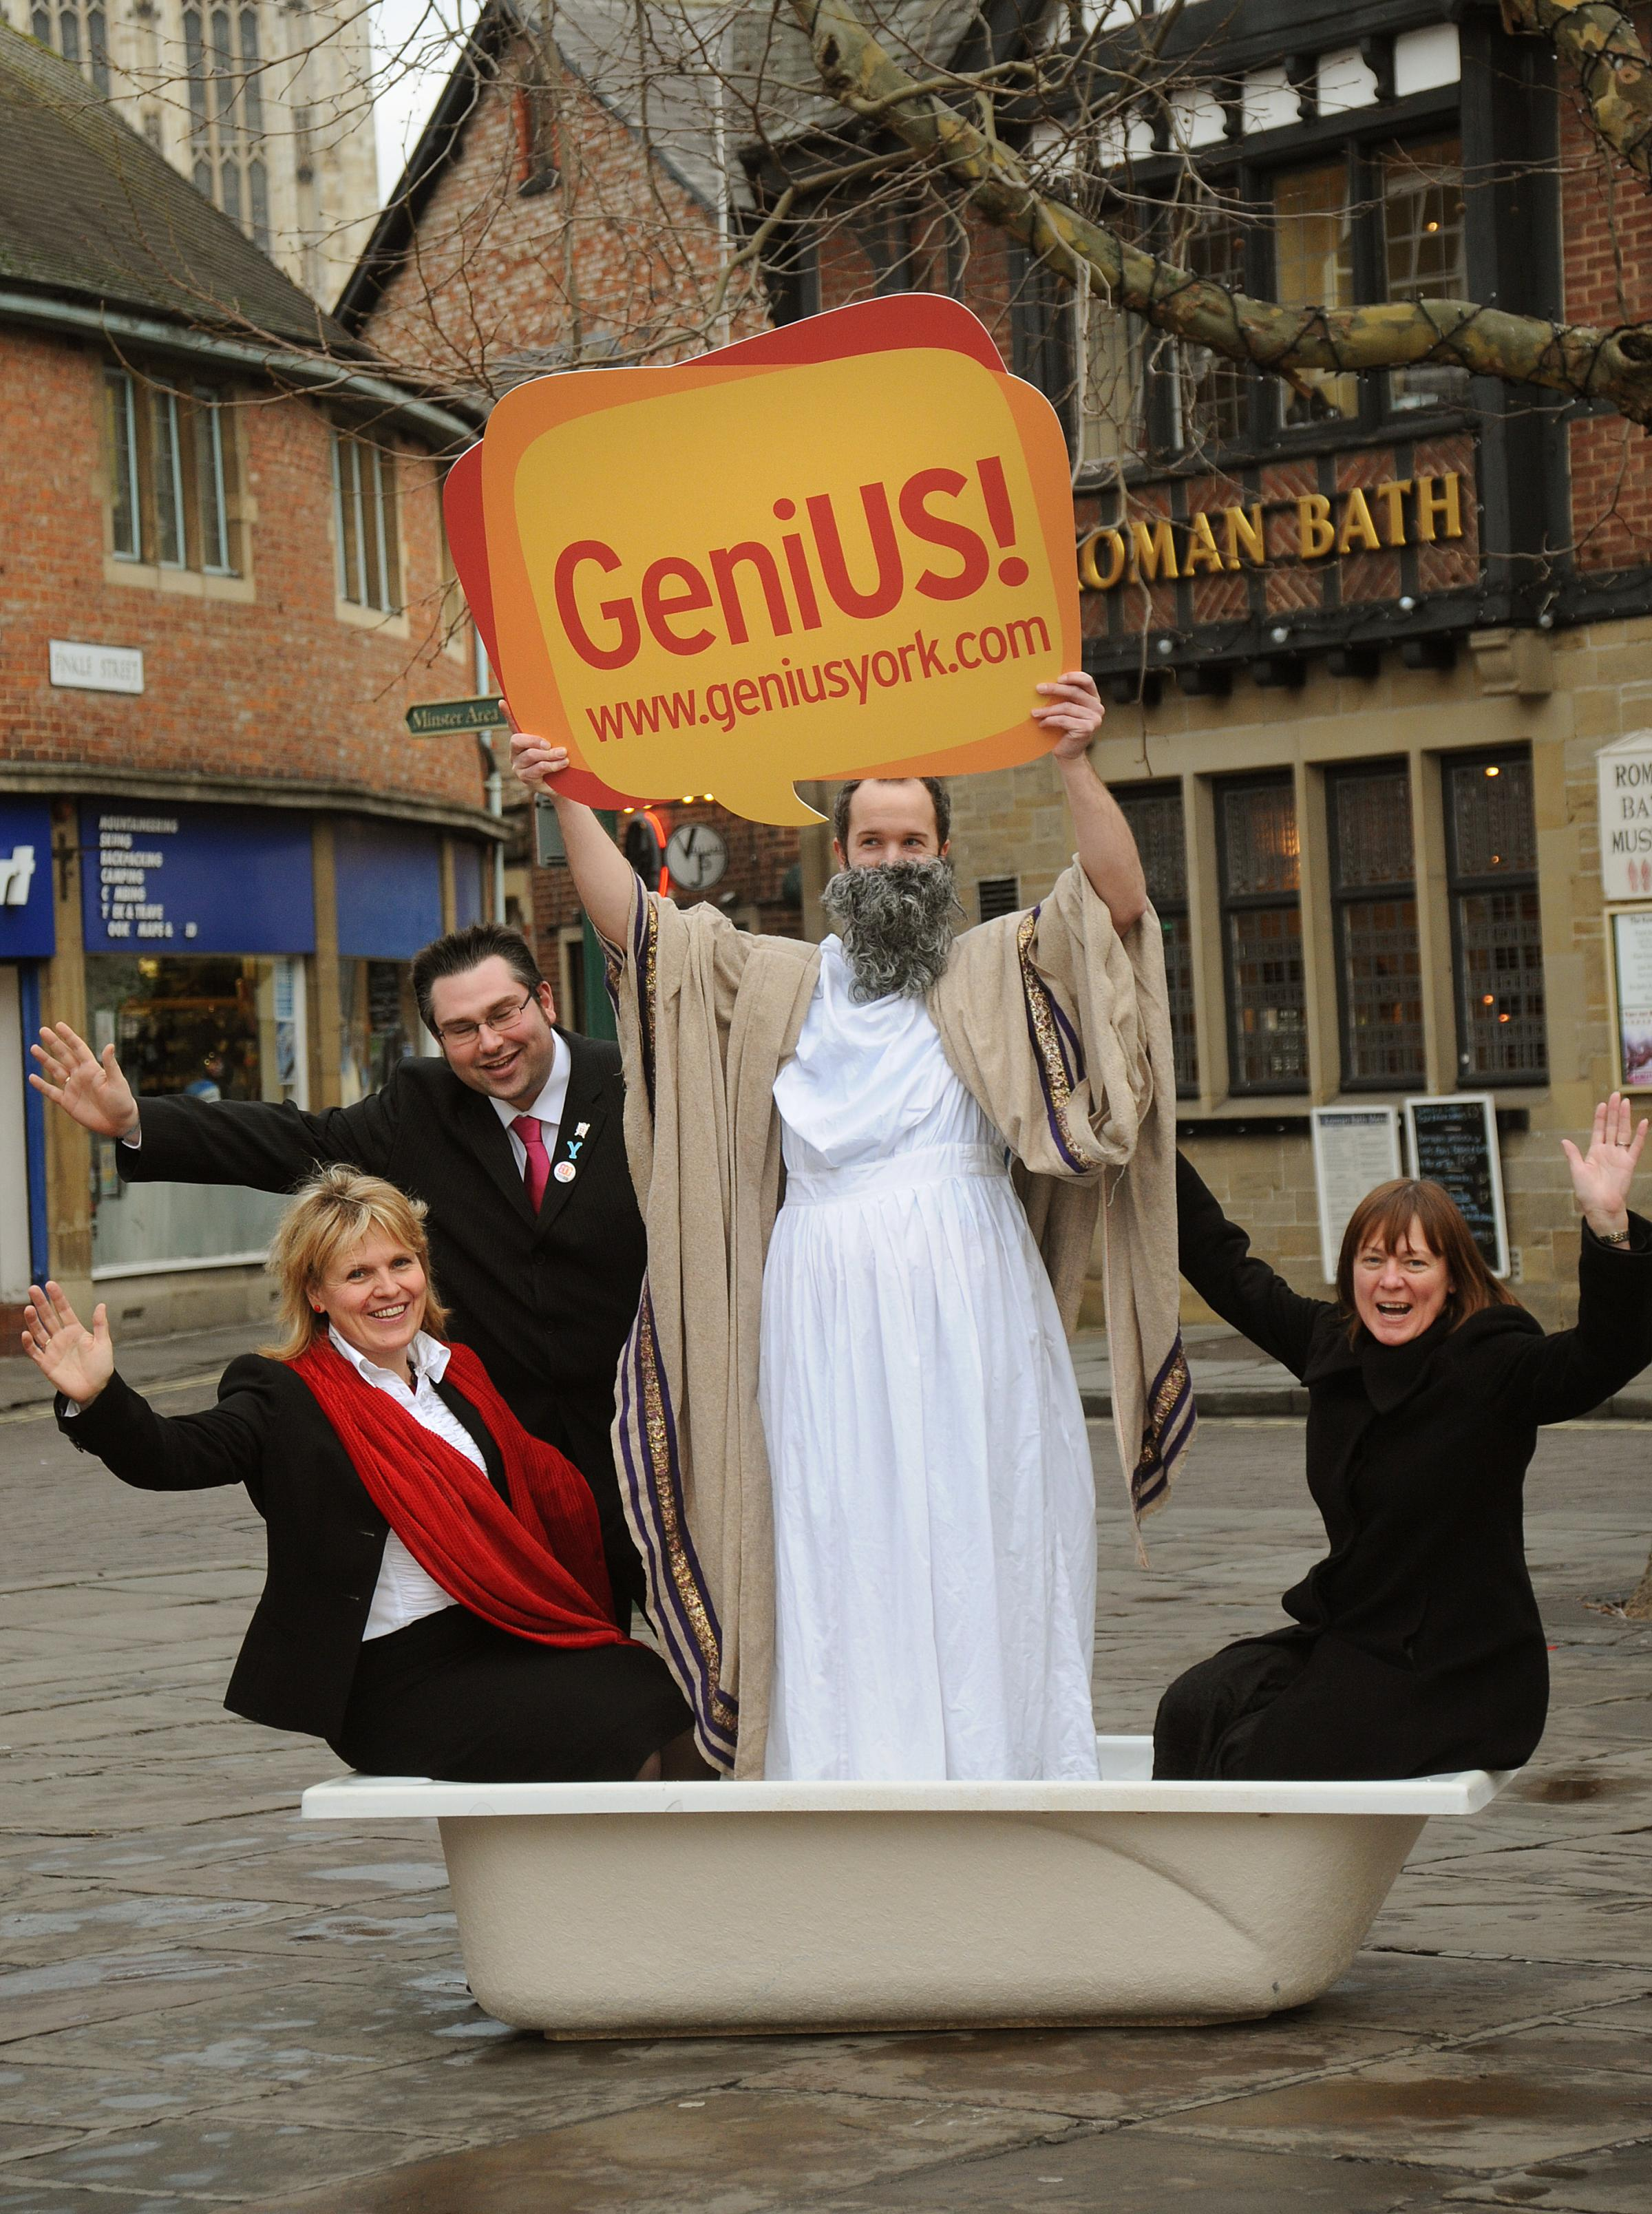 The launch in 2012 of the GeniUS community inovation scheme in St Sampsons Square by Kersten England, left, James Alexander, CYC Sustainability Officer Noel Collings as Archimedes and Susan McColl from Science City York.